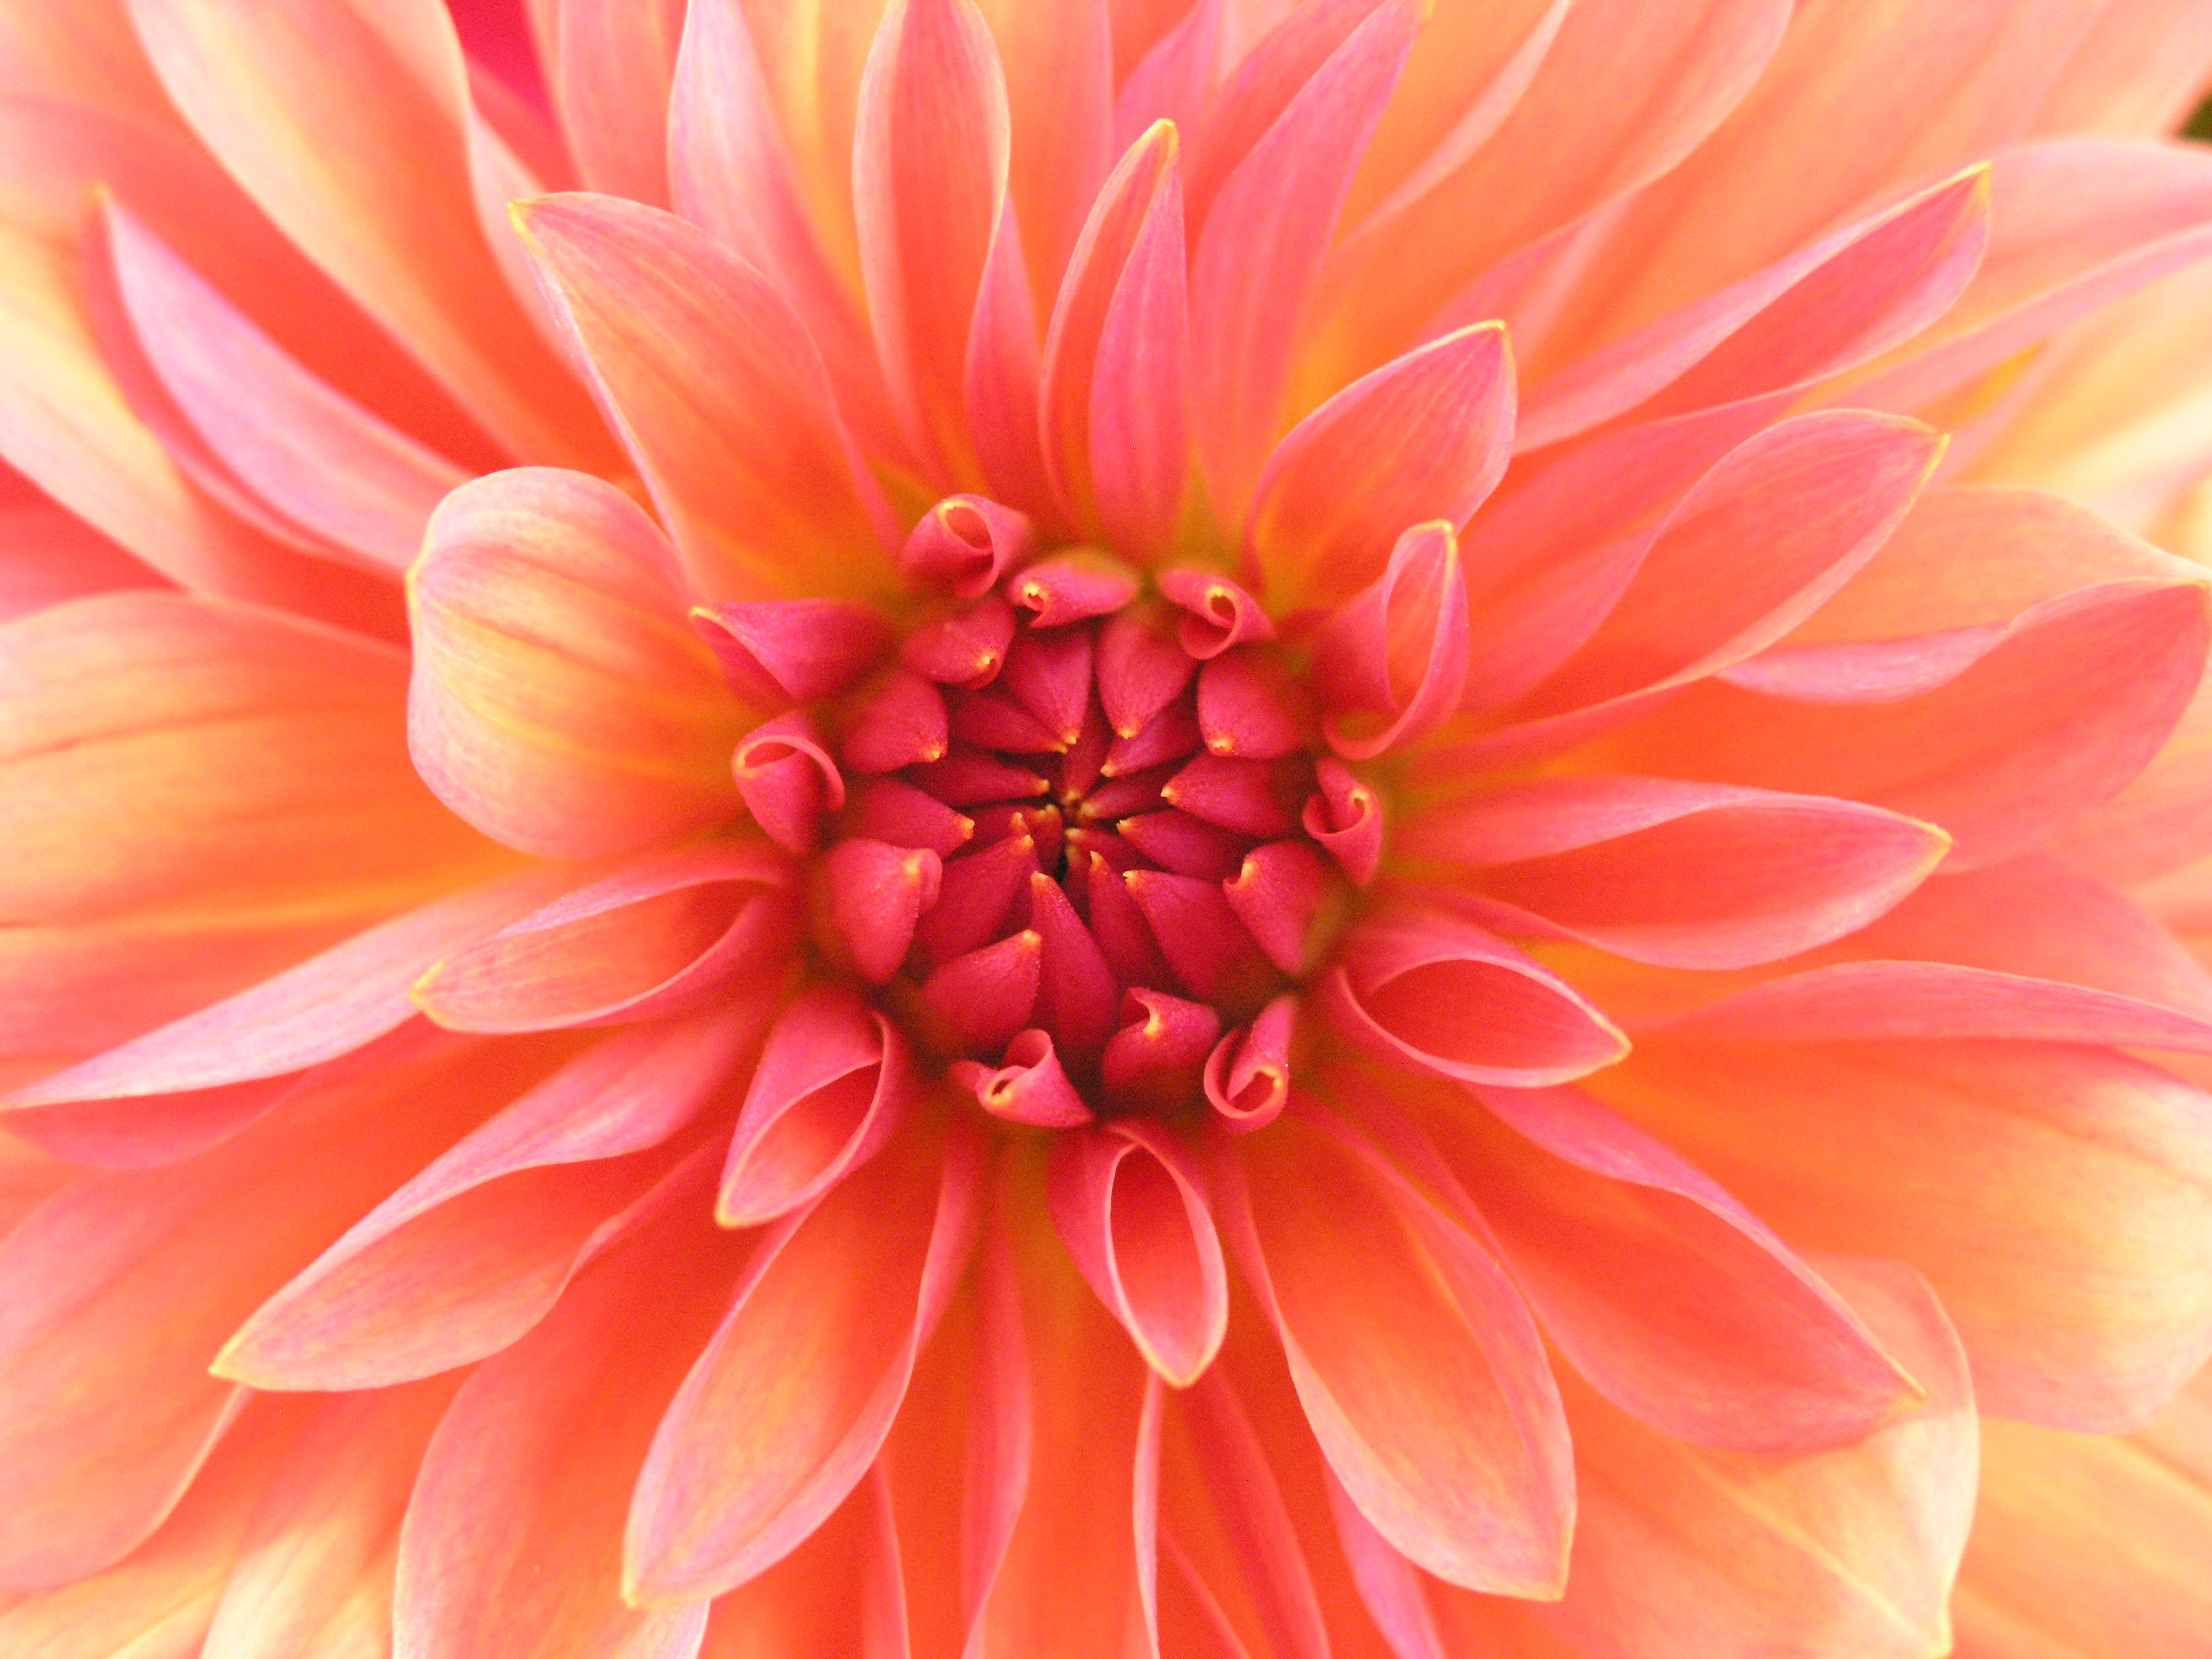 Peach and yellow Dahlia flower, pink, coral petals Color